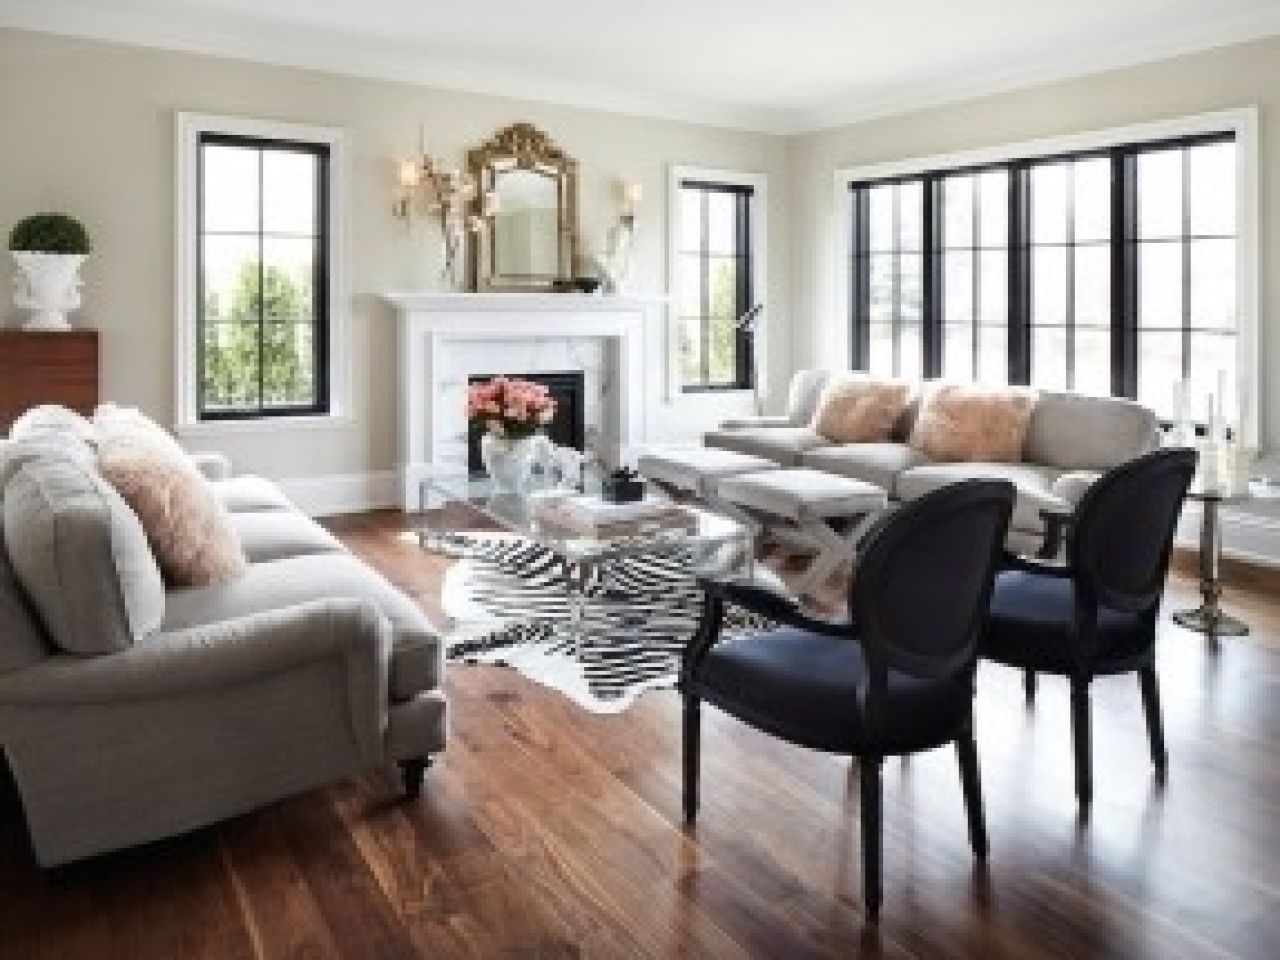 Gray And White Zebra Rug Arm Chairs Living Room Living Room With Sofas Facing Each Other